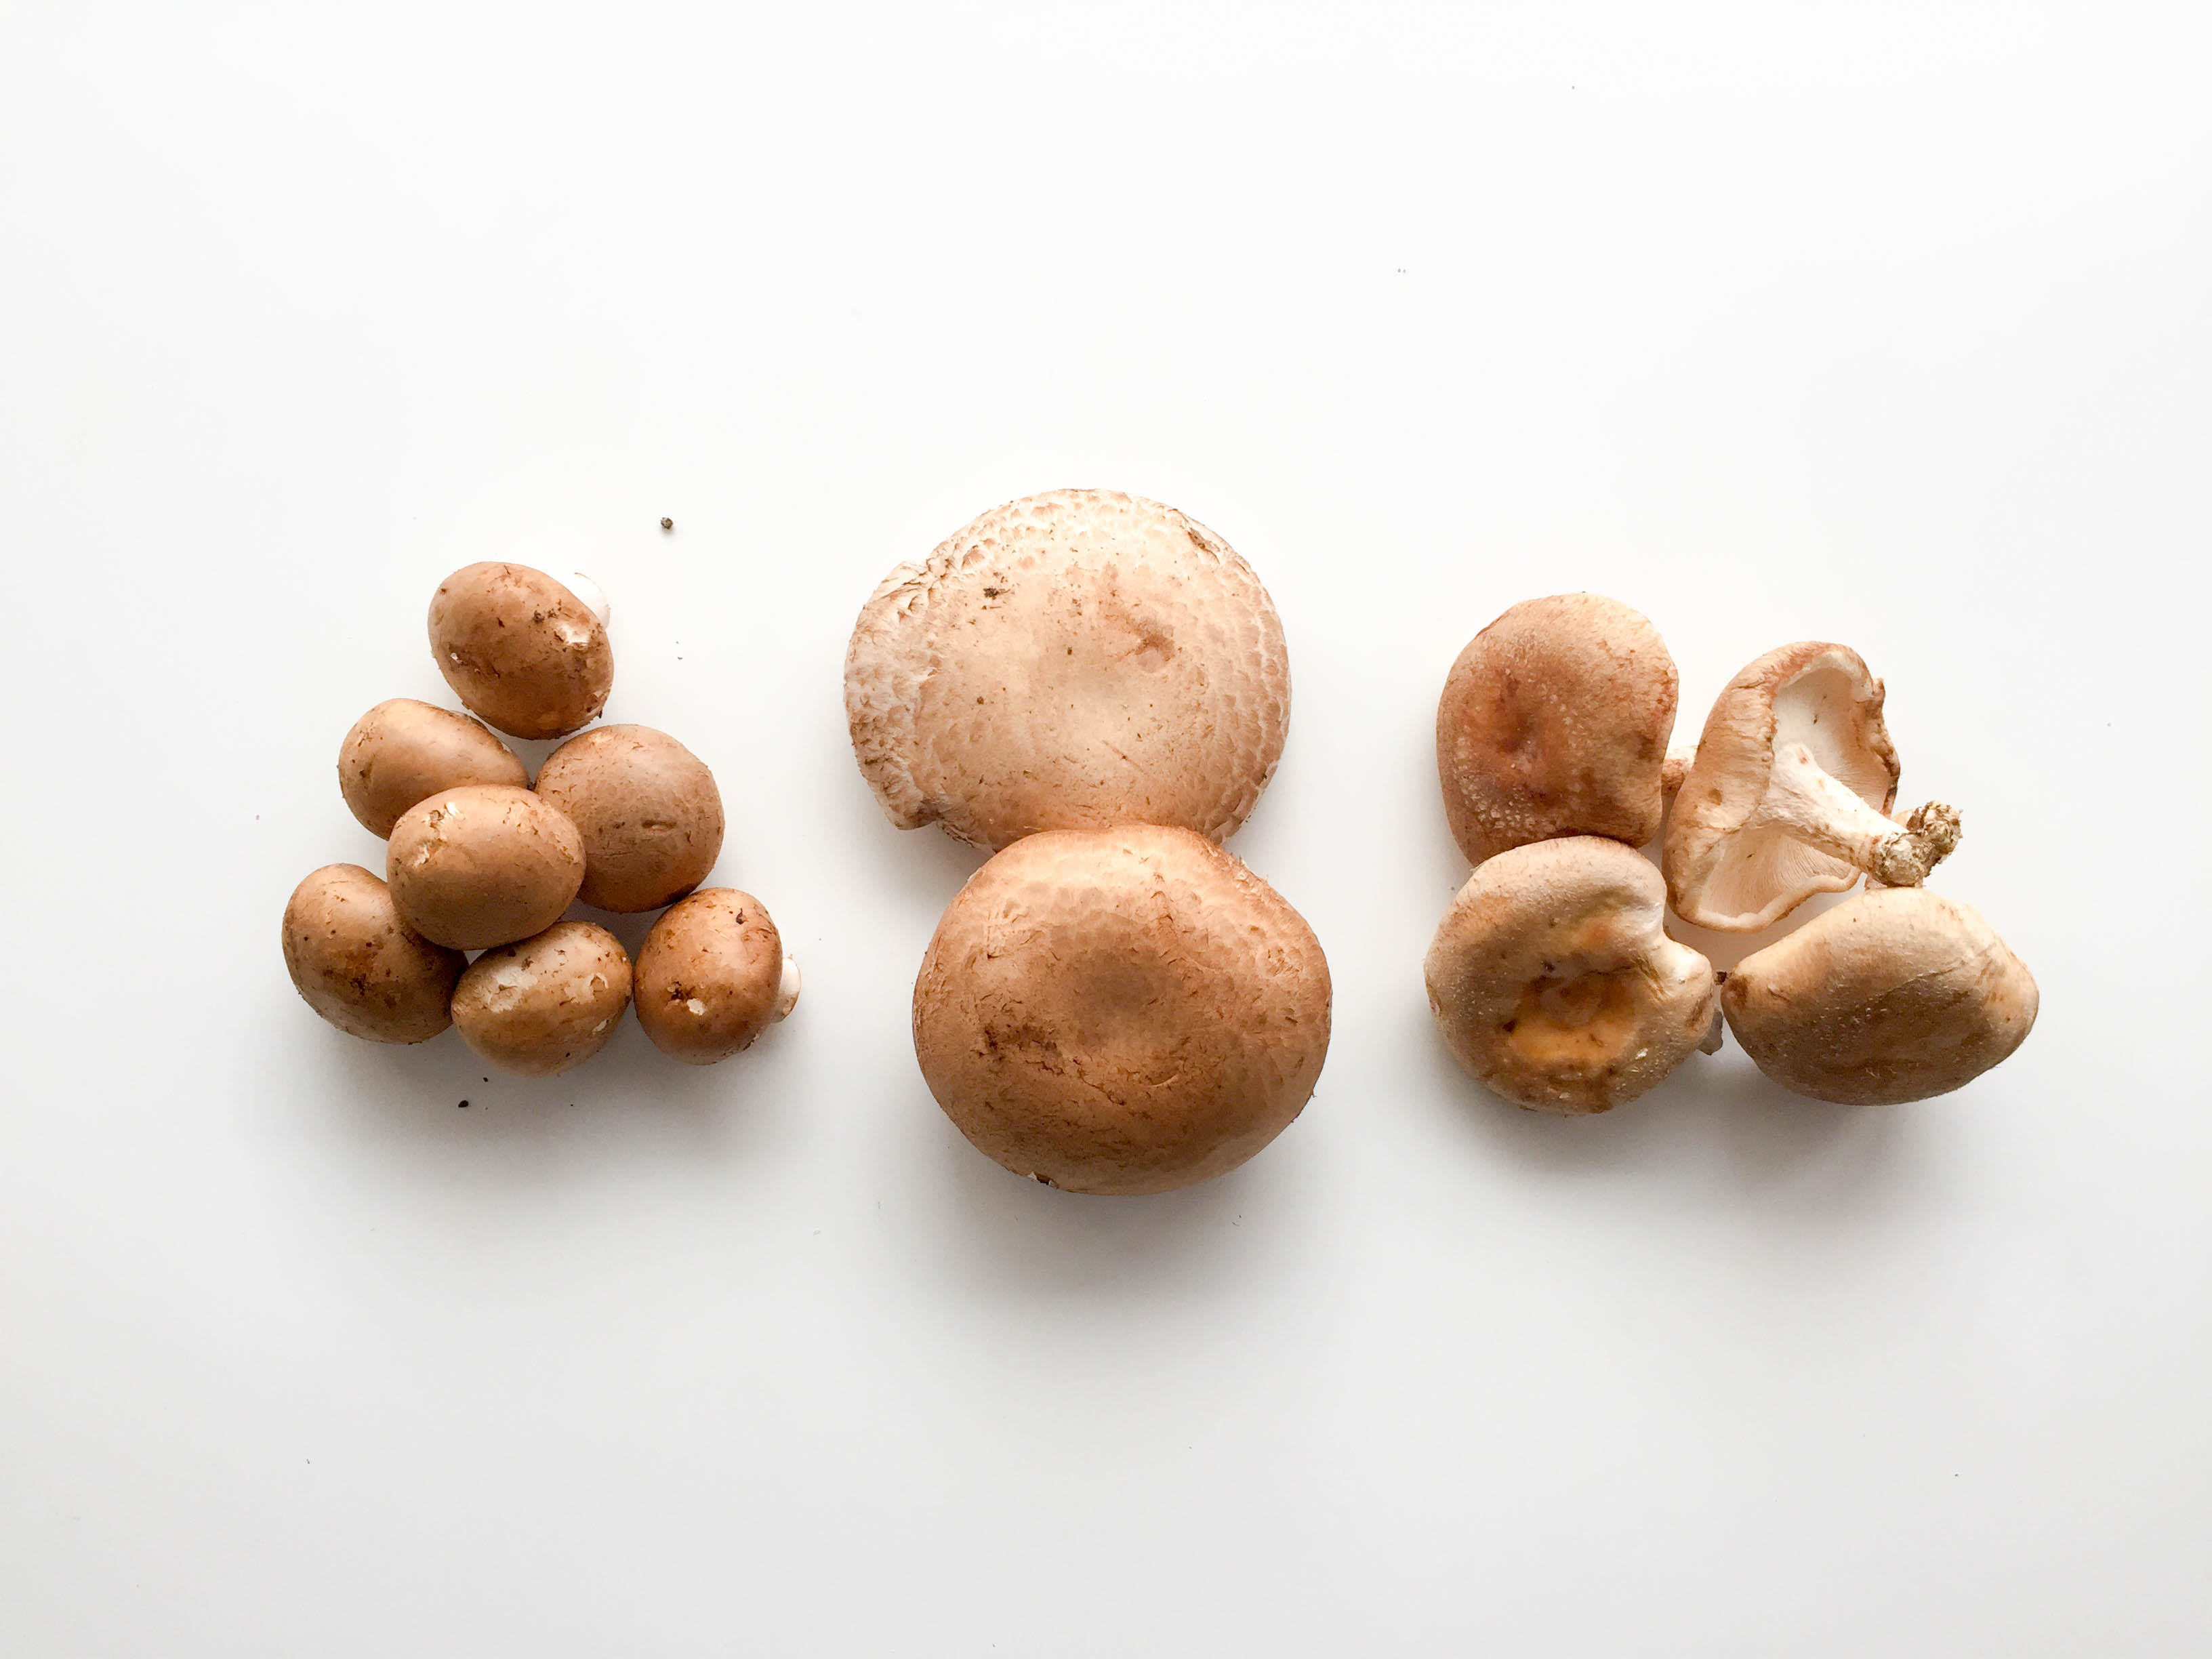 Featured Ingredient: Mushrooms